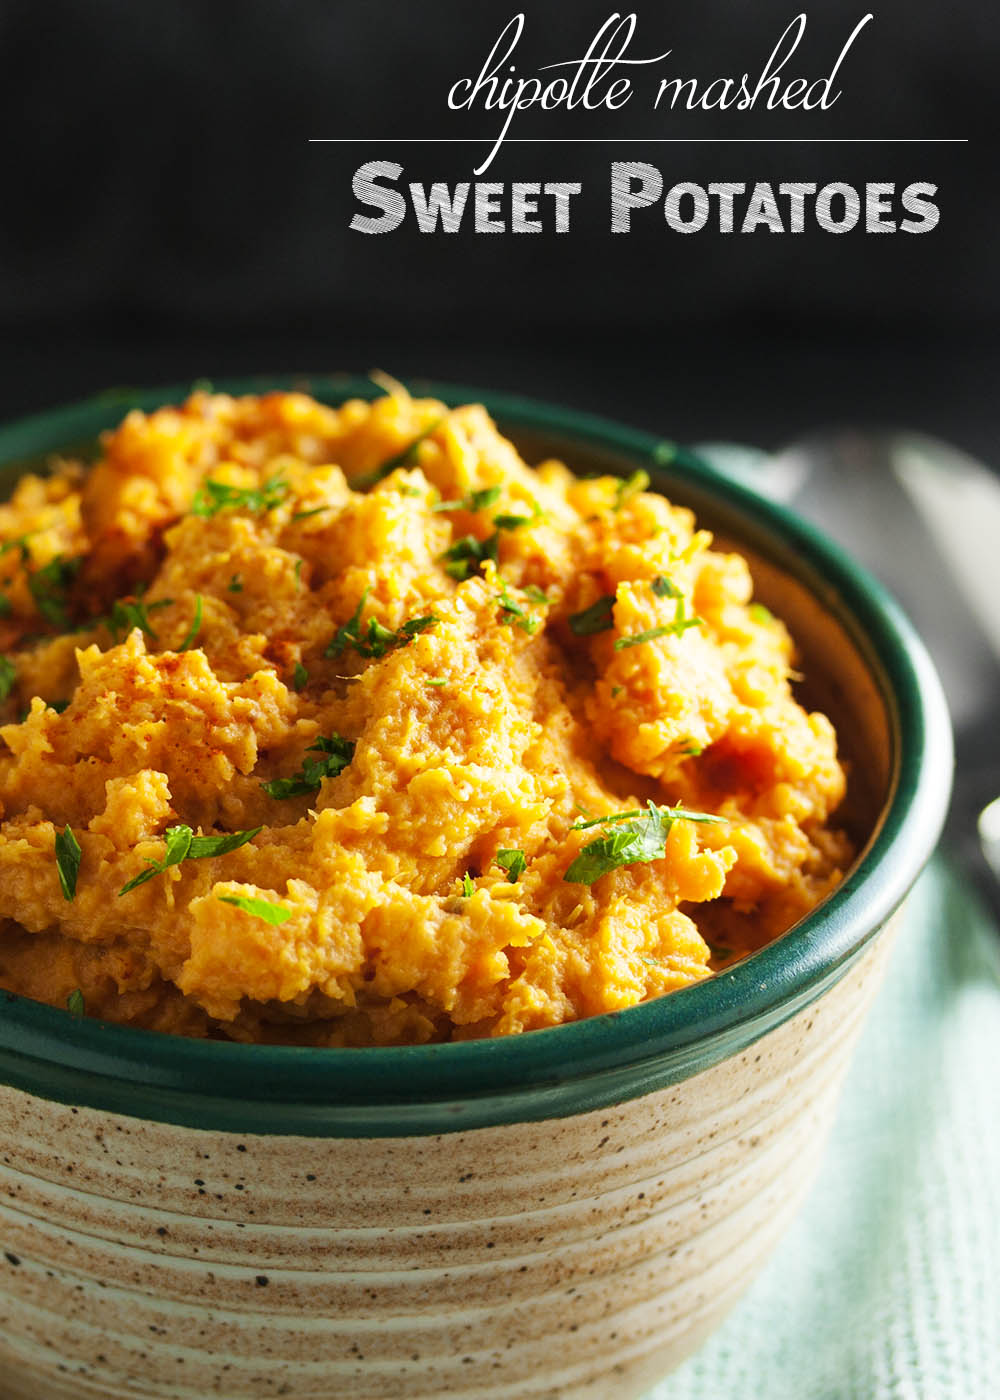 Chipotle Mashed Sweet Potatoes - Spicy, smoky chipotle in adobo sauce provides just the right amount smoky heat to balance out these creamy and buttery sweet potatoes. Excellent when paired with roasted or grilled meats! | justalittlebitofbacon.com